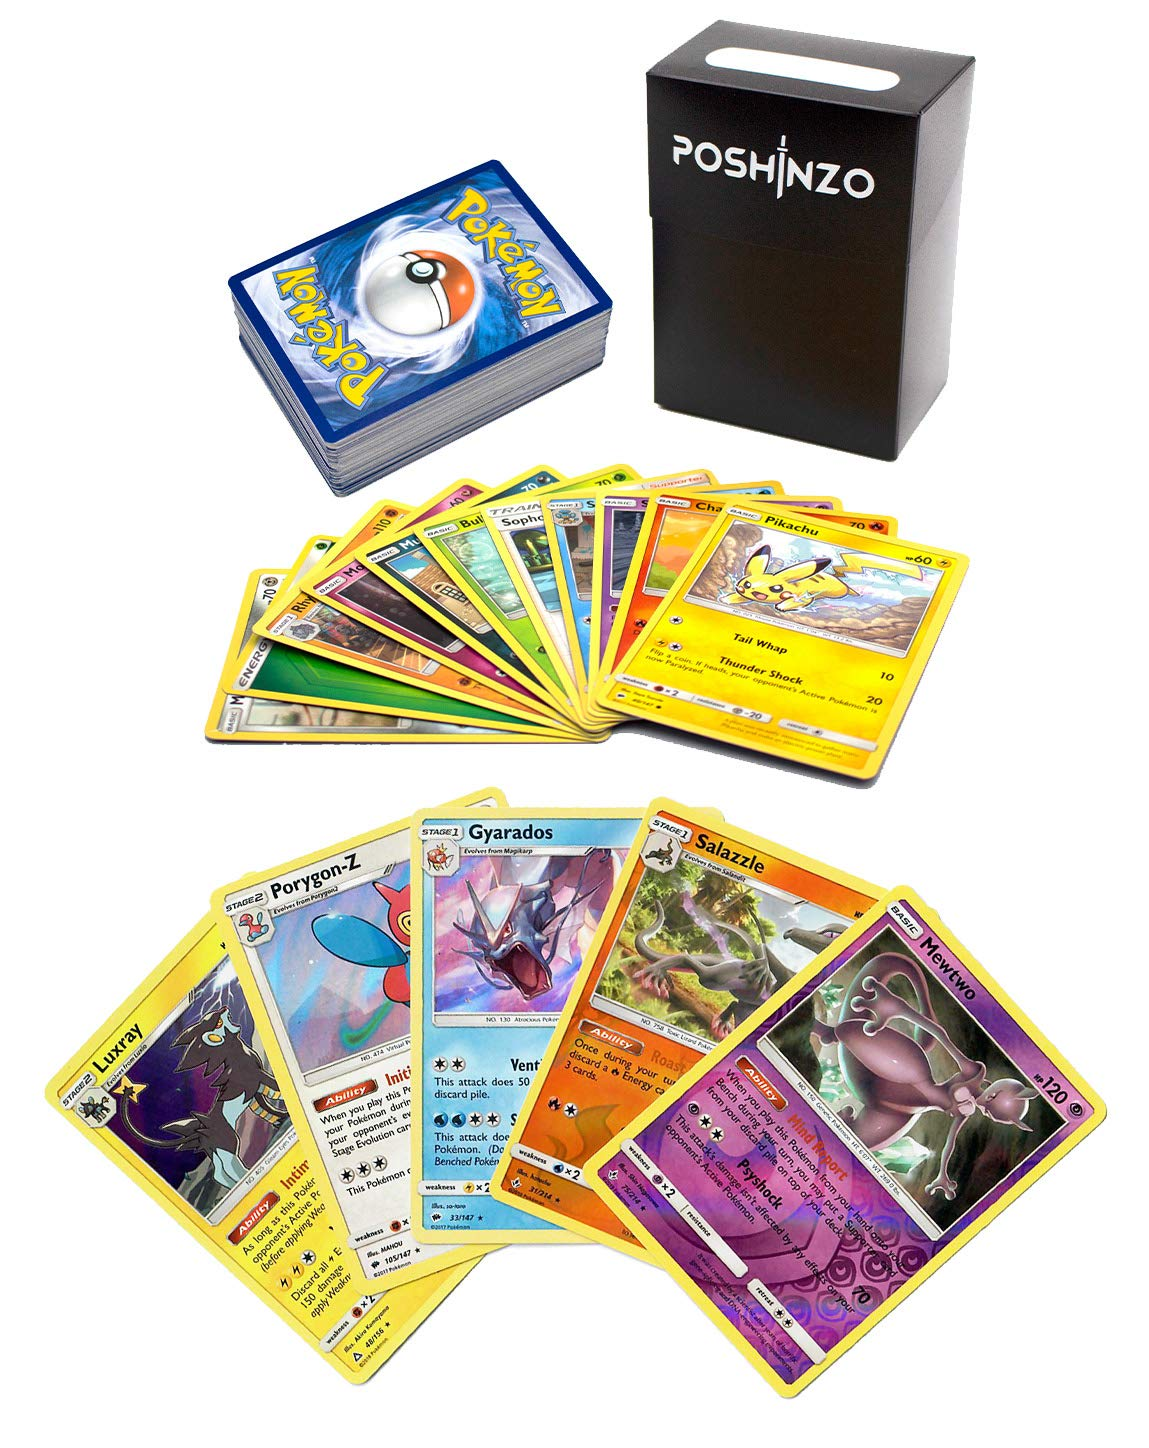 100 Pokemon Cards with 5 Holo Rares Plus Poshinzo Card Box 71LI8tfXzQL